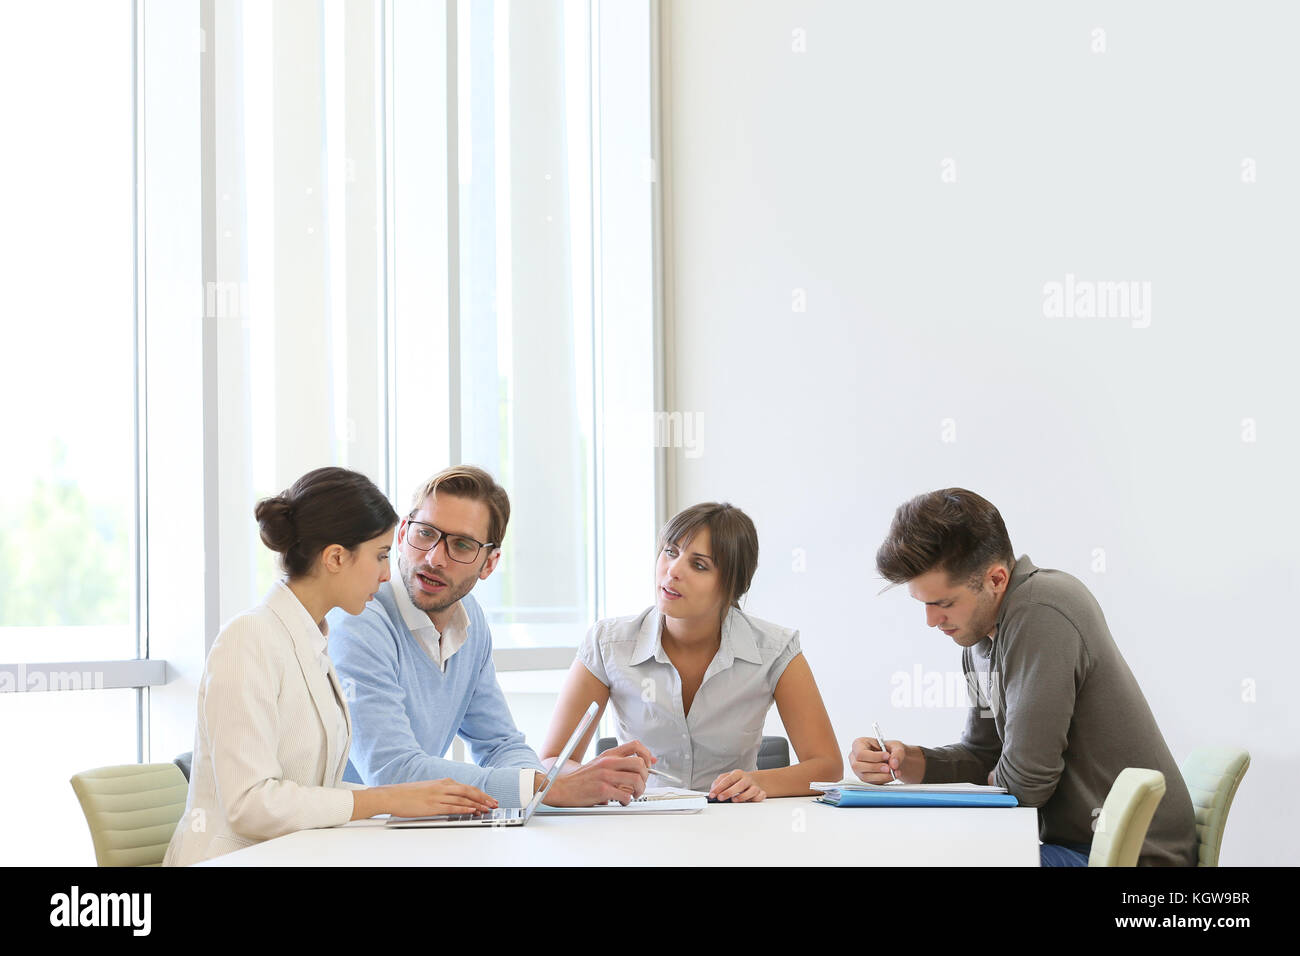 Business people meeting around table in modern space - Stock Image